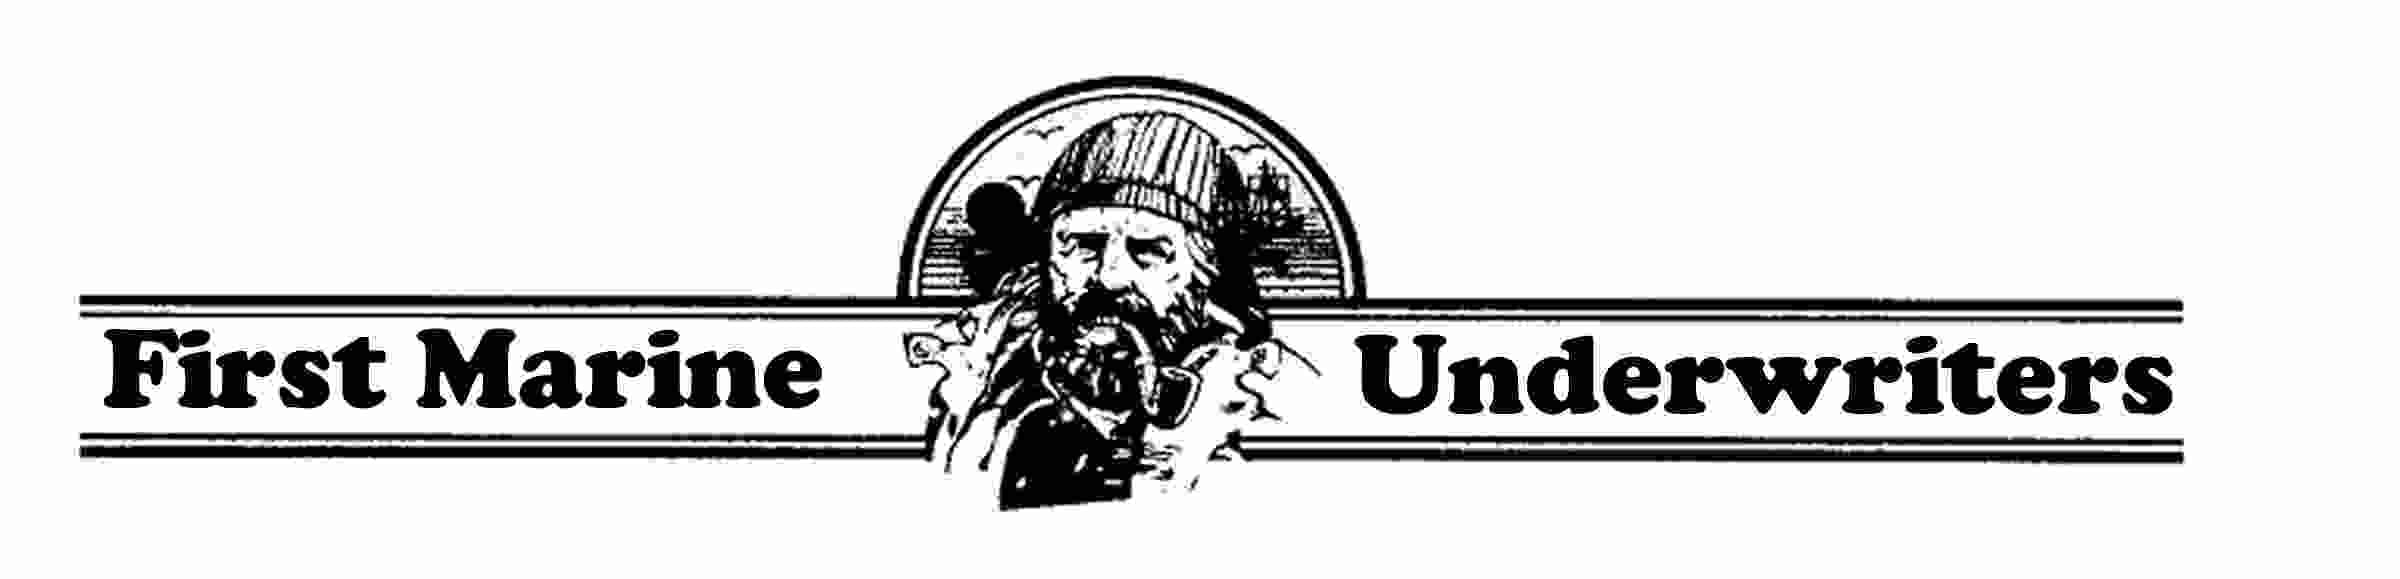 First Marine Underwriters logo